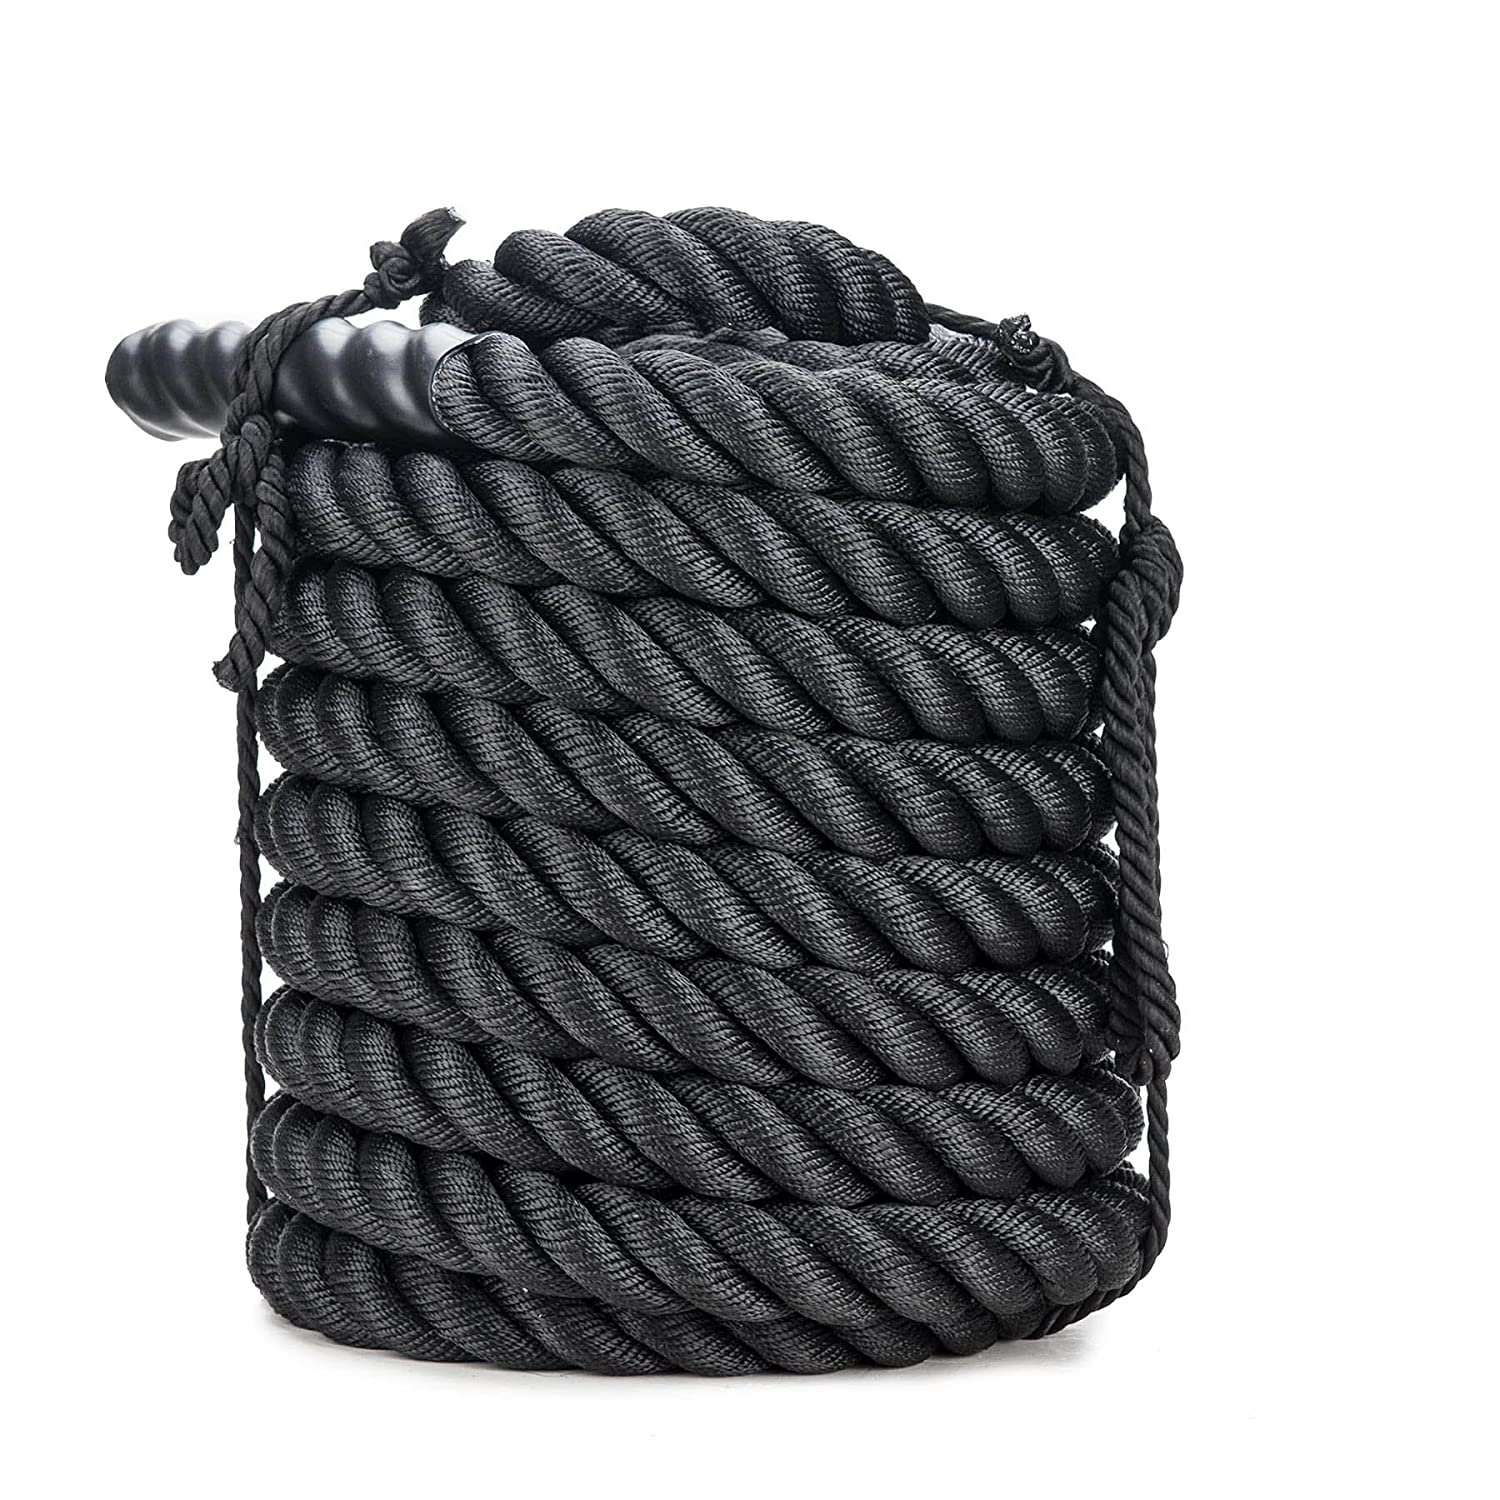 ZELUS Battle Ropes Pure Poly Dacron Exercise Ropes – 1.5 2 Diameter 30 40 50ft Length Exercise Training Battle Rope for Strength and Conditioning Workouts